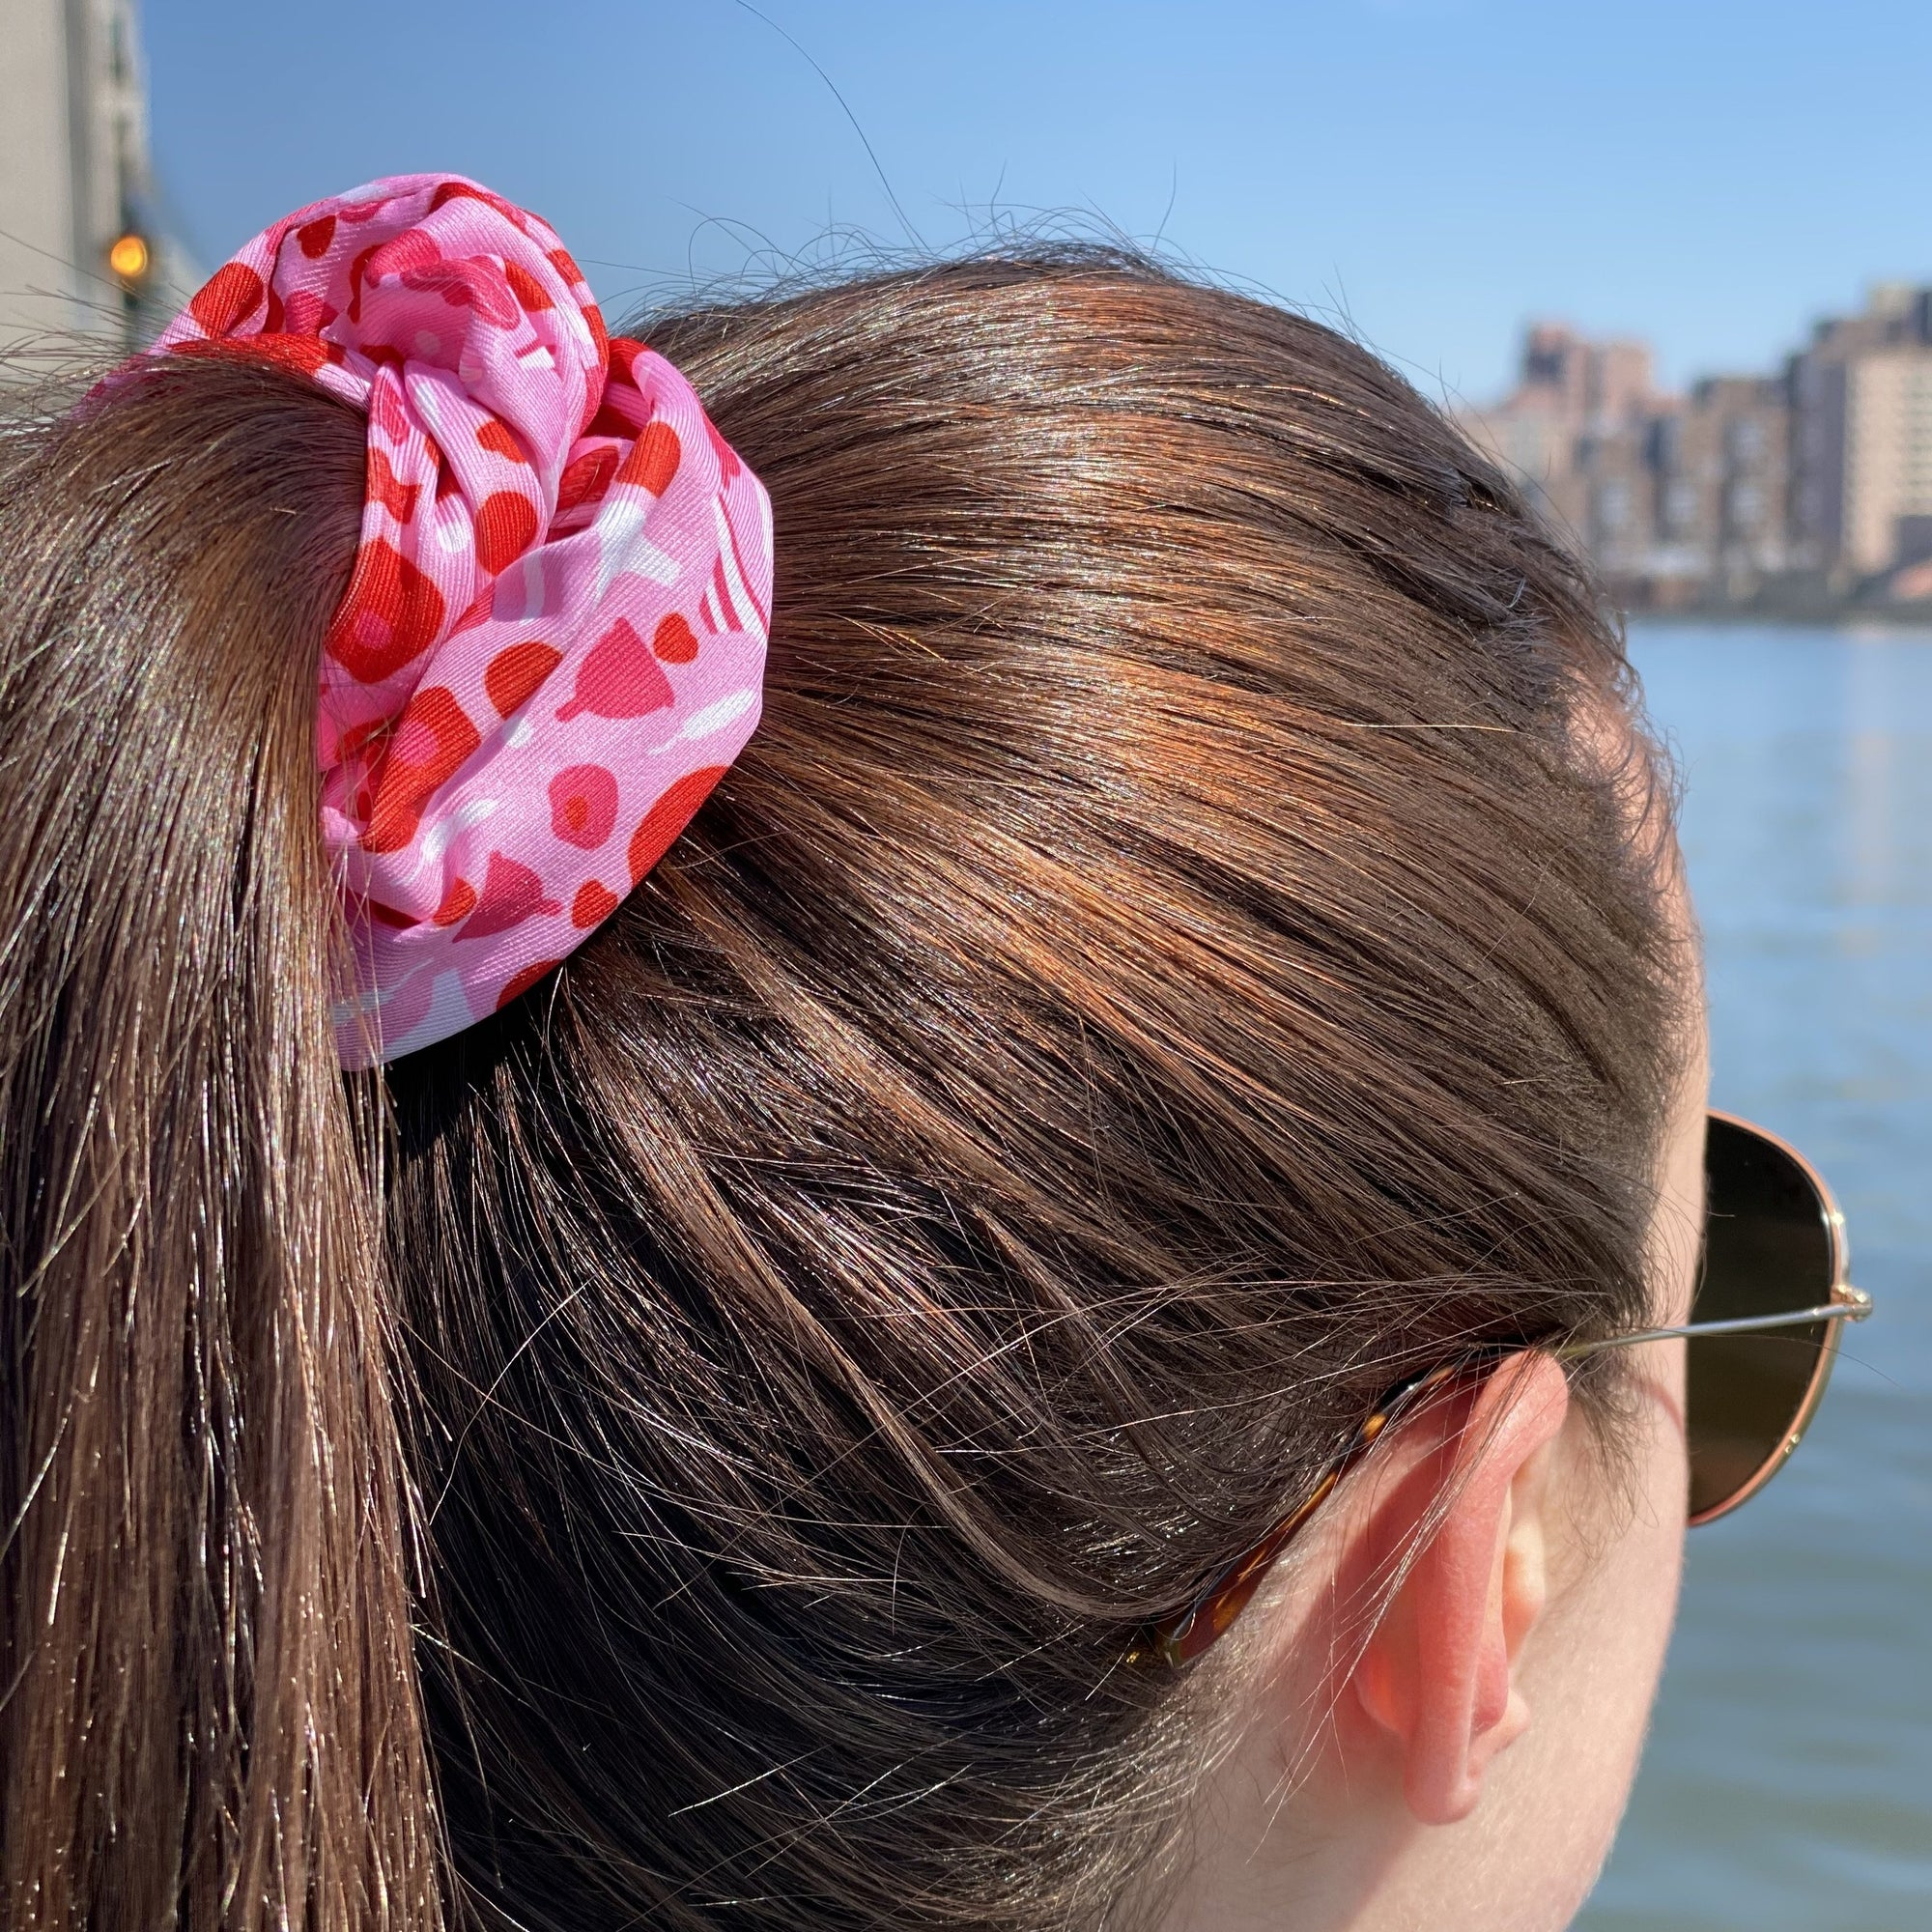 period equality scrunchie